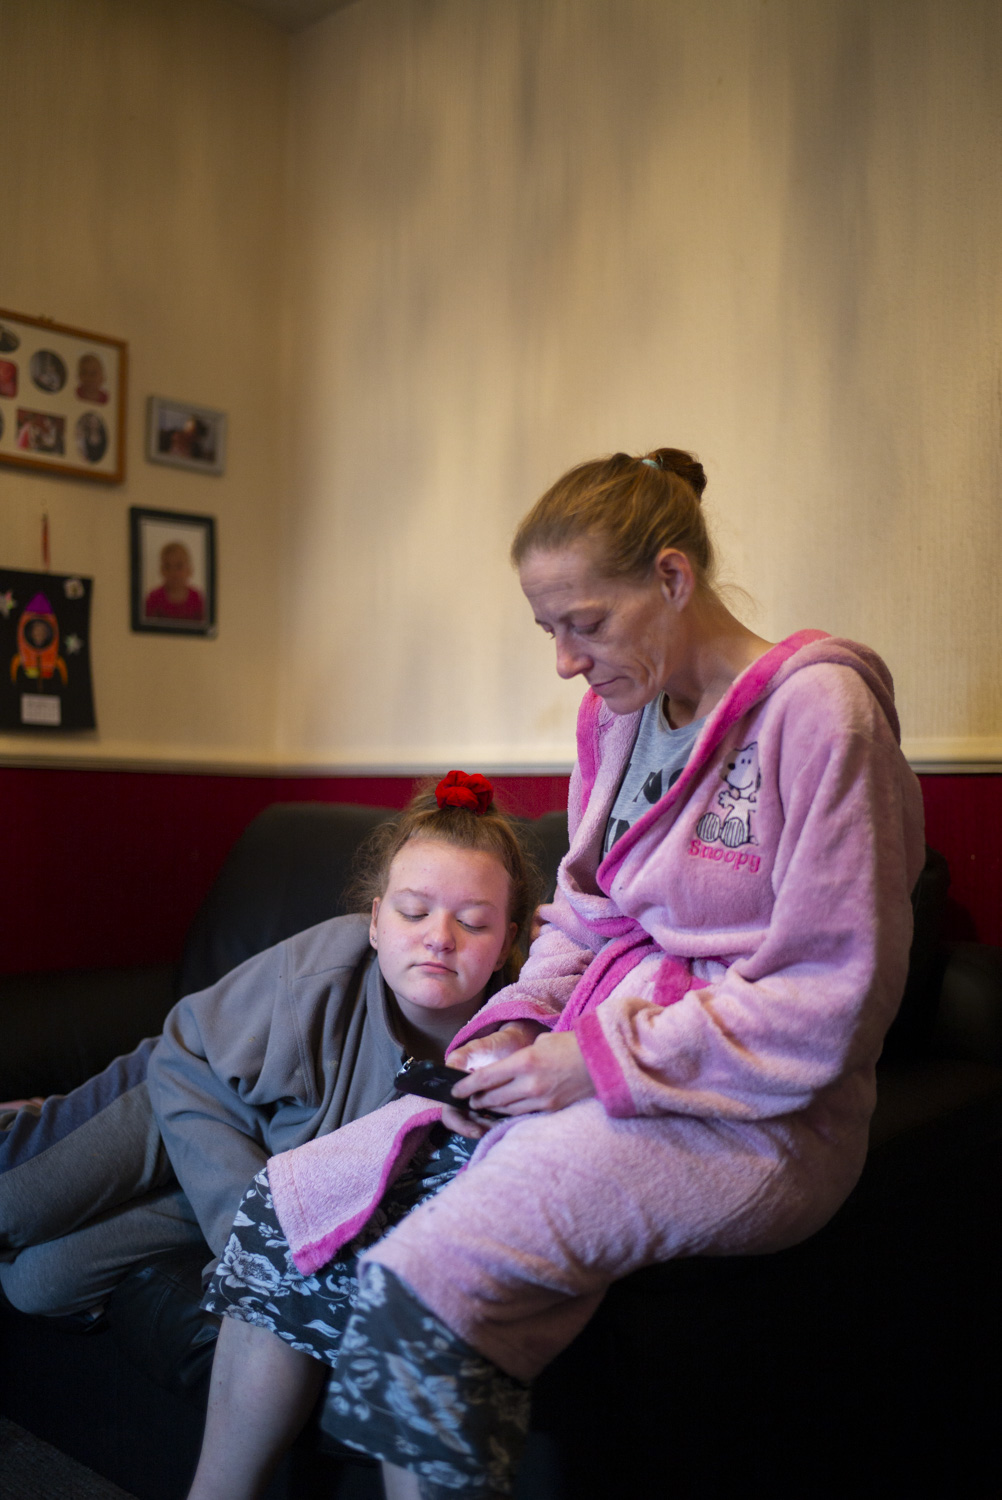 """Claire with Colin's daughter, Kayleigh.  """" Here in Blackpool the benefit system is just starting everybody on Universal Credit. I don't like this because it is messing everybody up. It changes everybody. Their telling everybody to take five weeks but really, it's taking anywhere up to 12 to 15 weeks which is putting people into debt with their rent, Council tax, and various other issue things. At the minute they're changing me over to Universal Credit. They haven't given me a proper payment from them as of yet, I'm still waiting. On my ESA (Employment Support Allowance), they took me off that because they said even though because of my chronic pain syndrome and health issues, they said I could still physically work…"""""""